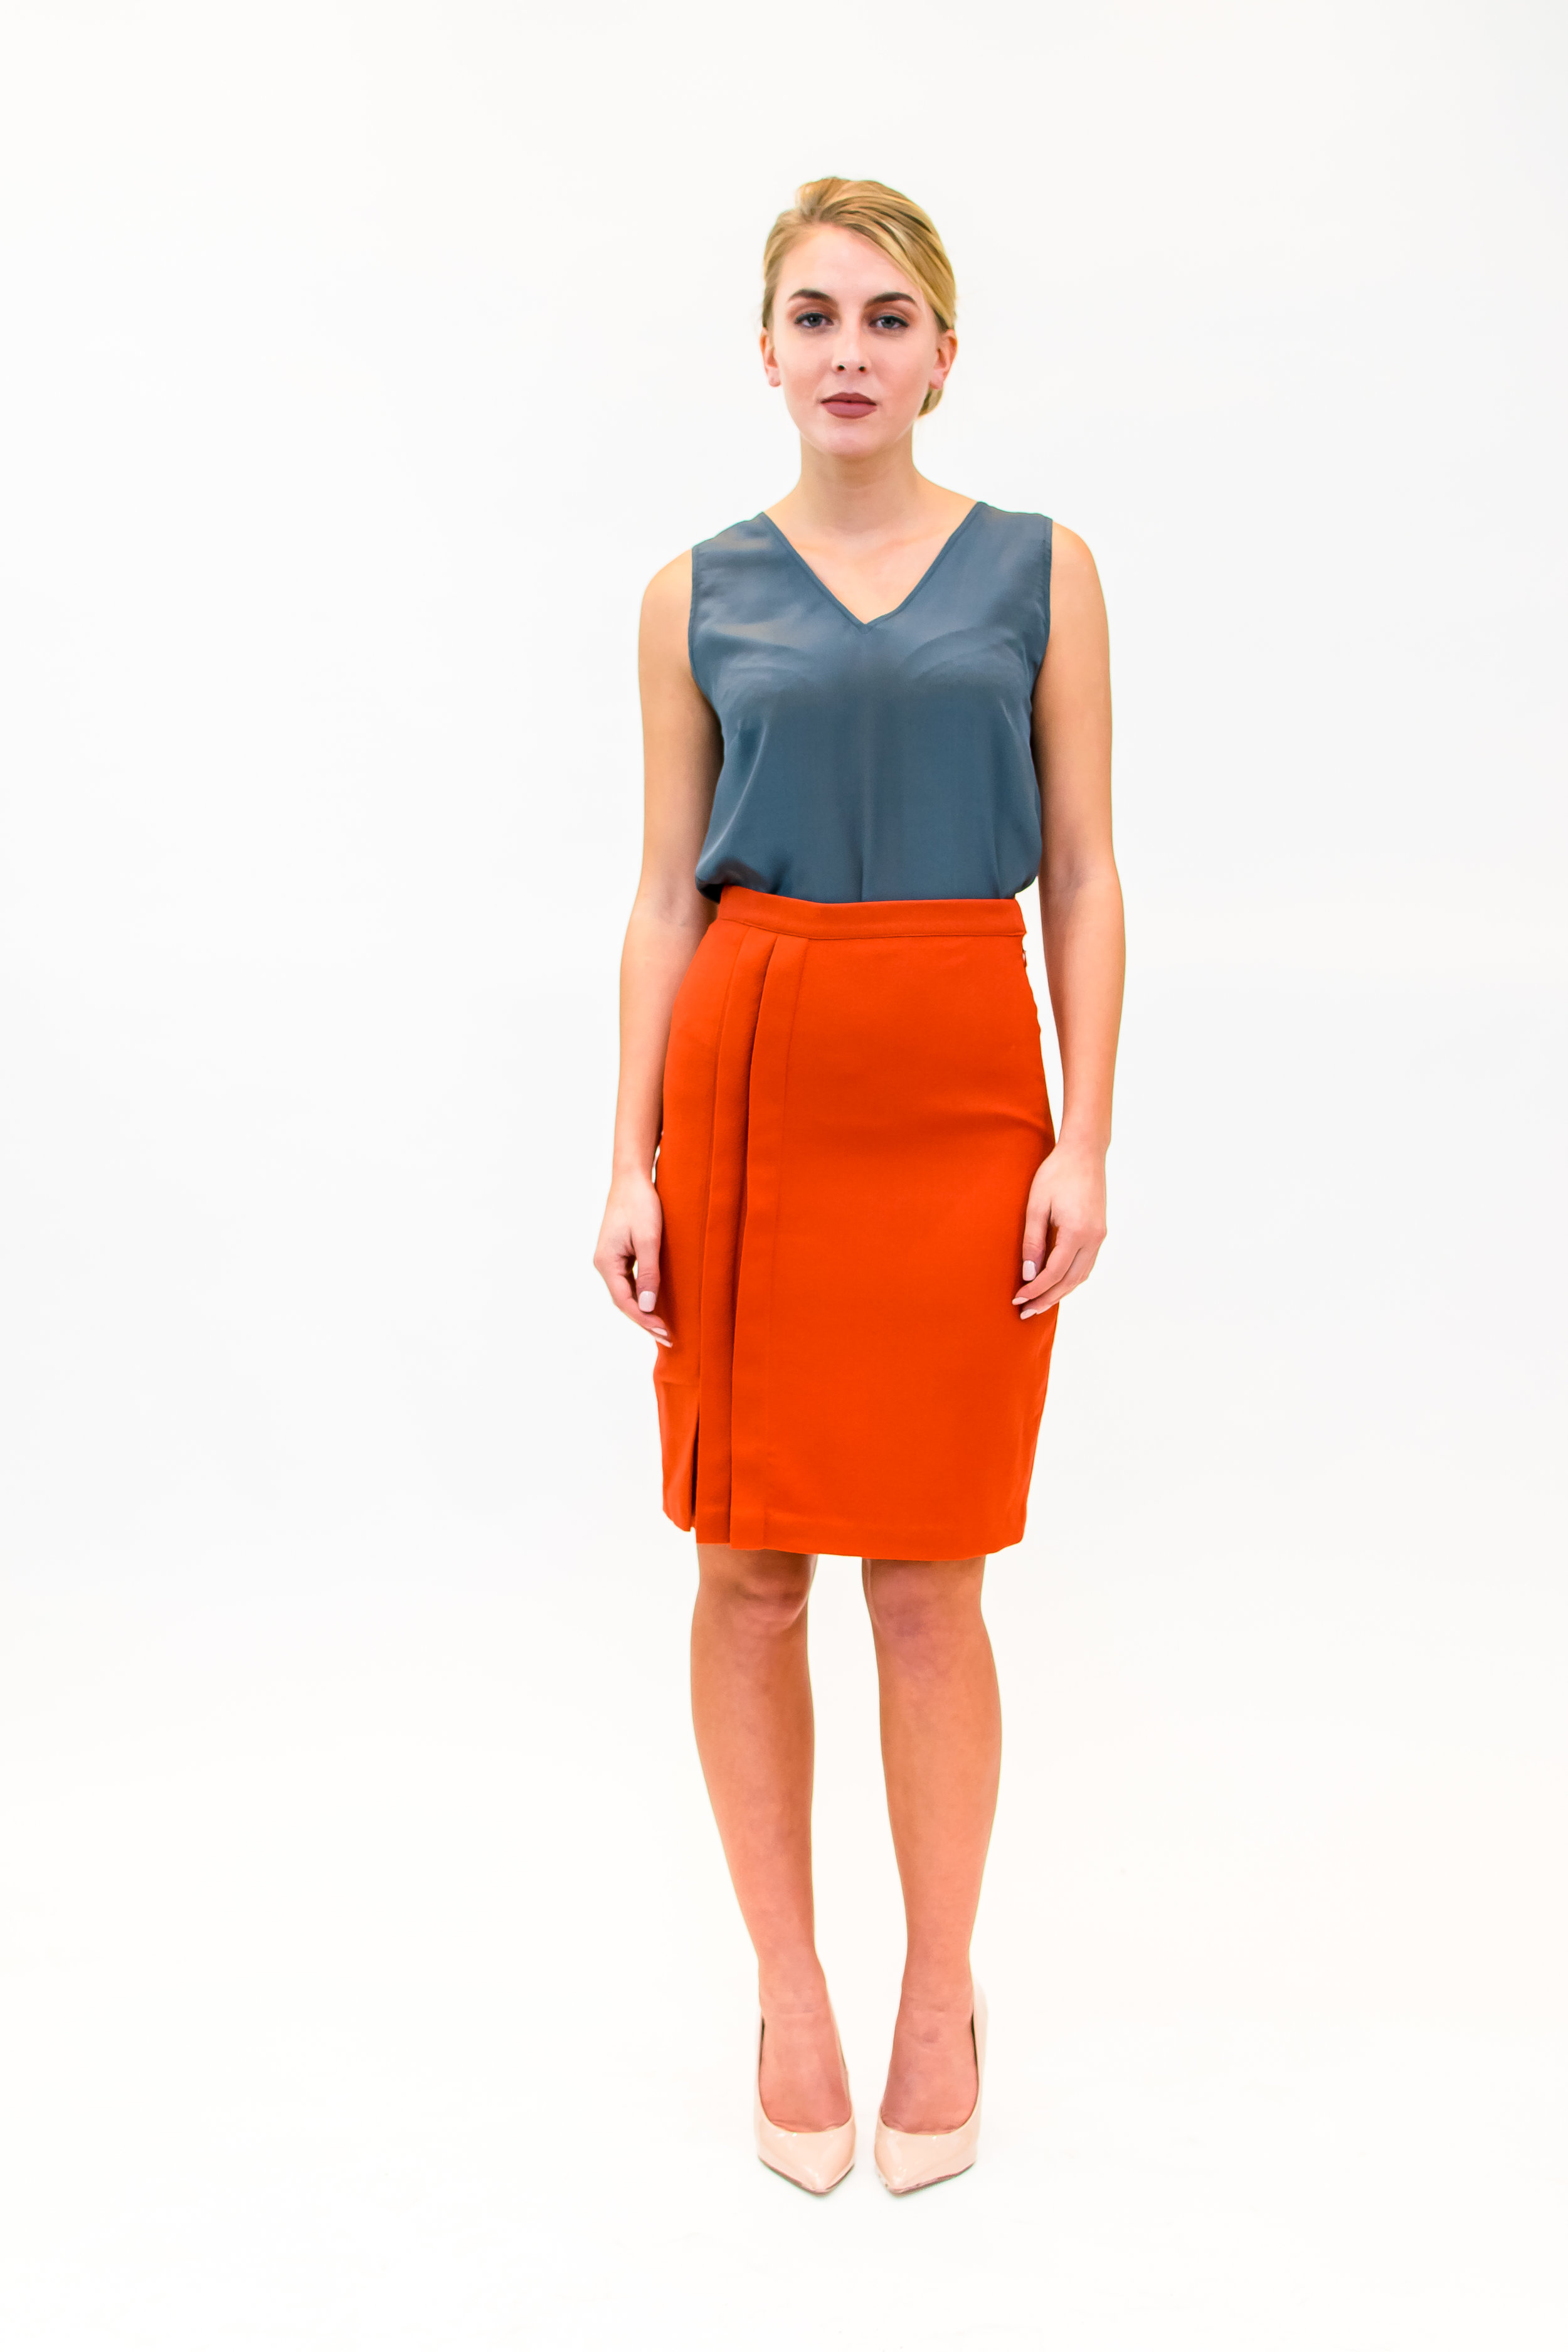 Camisole & skirt with front pleat